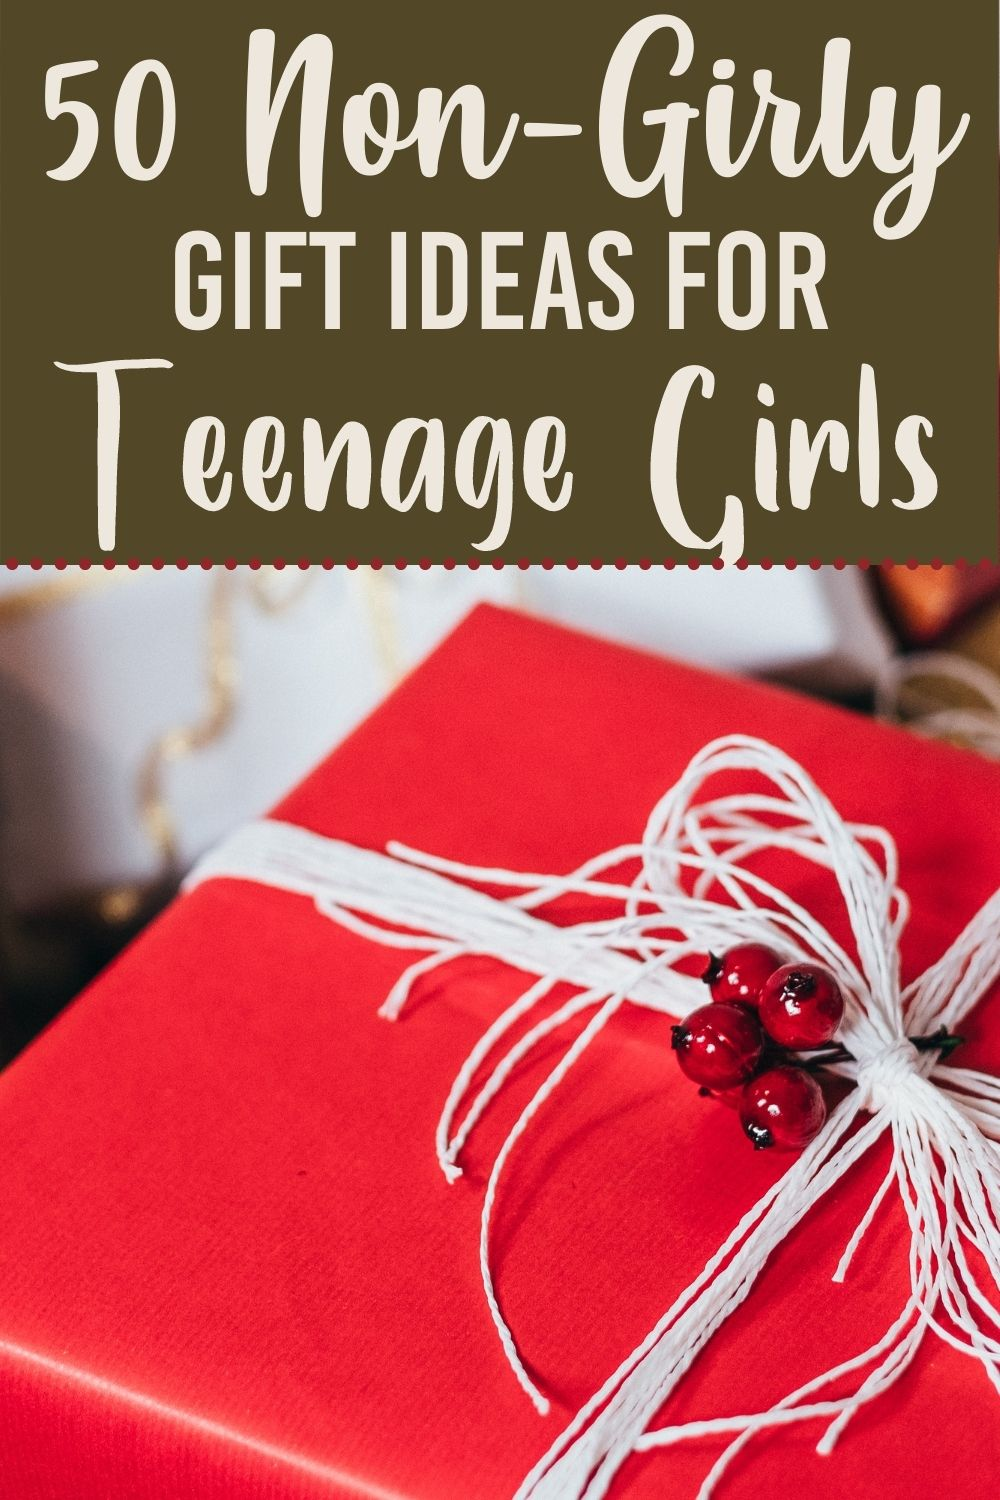 Are you looking for some Non-Girly Gifts for Teenage Girls? Look no further than this amazing list of ideas that will appeal to the girl in your life. #gifts #giftideas #nongirly #teenage #birthday #christmas #whattobuy via @homebyjenn